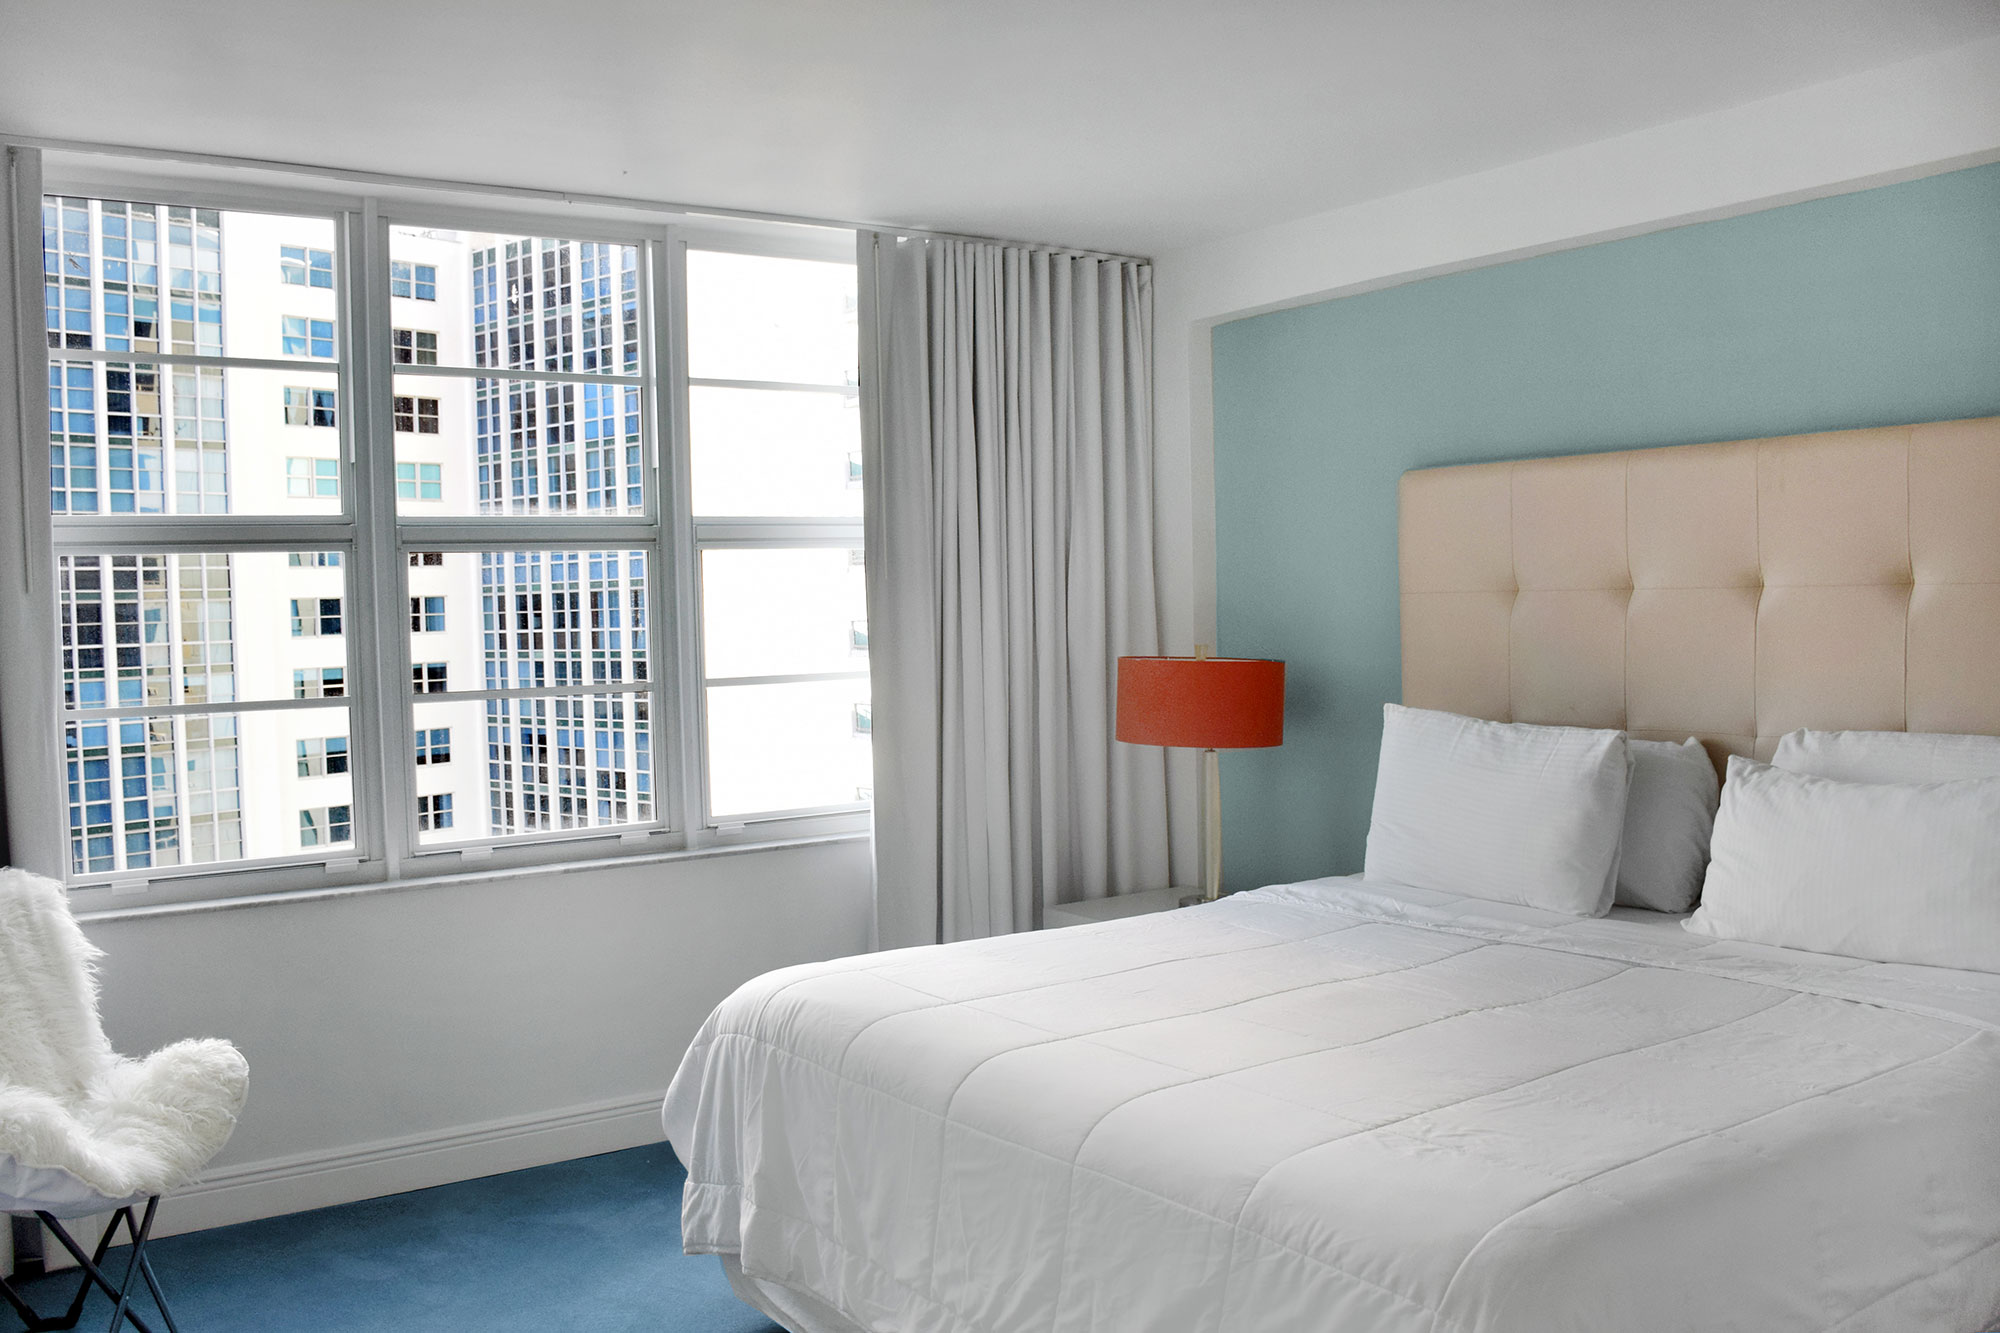 Room at Seacoast Suites apartments on Miami Beach